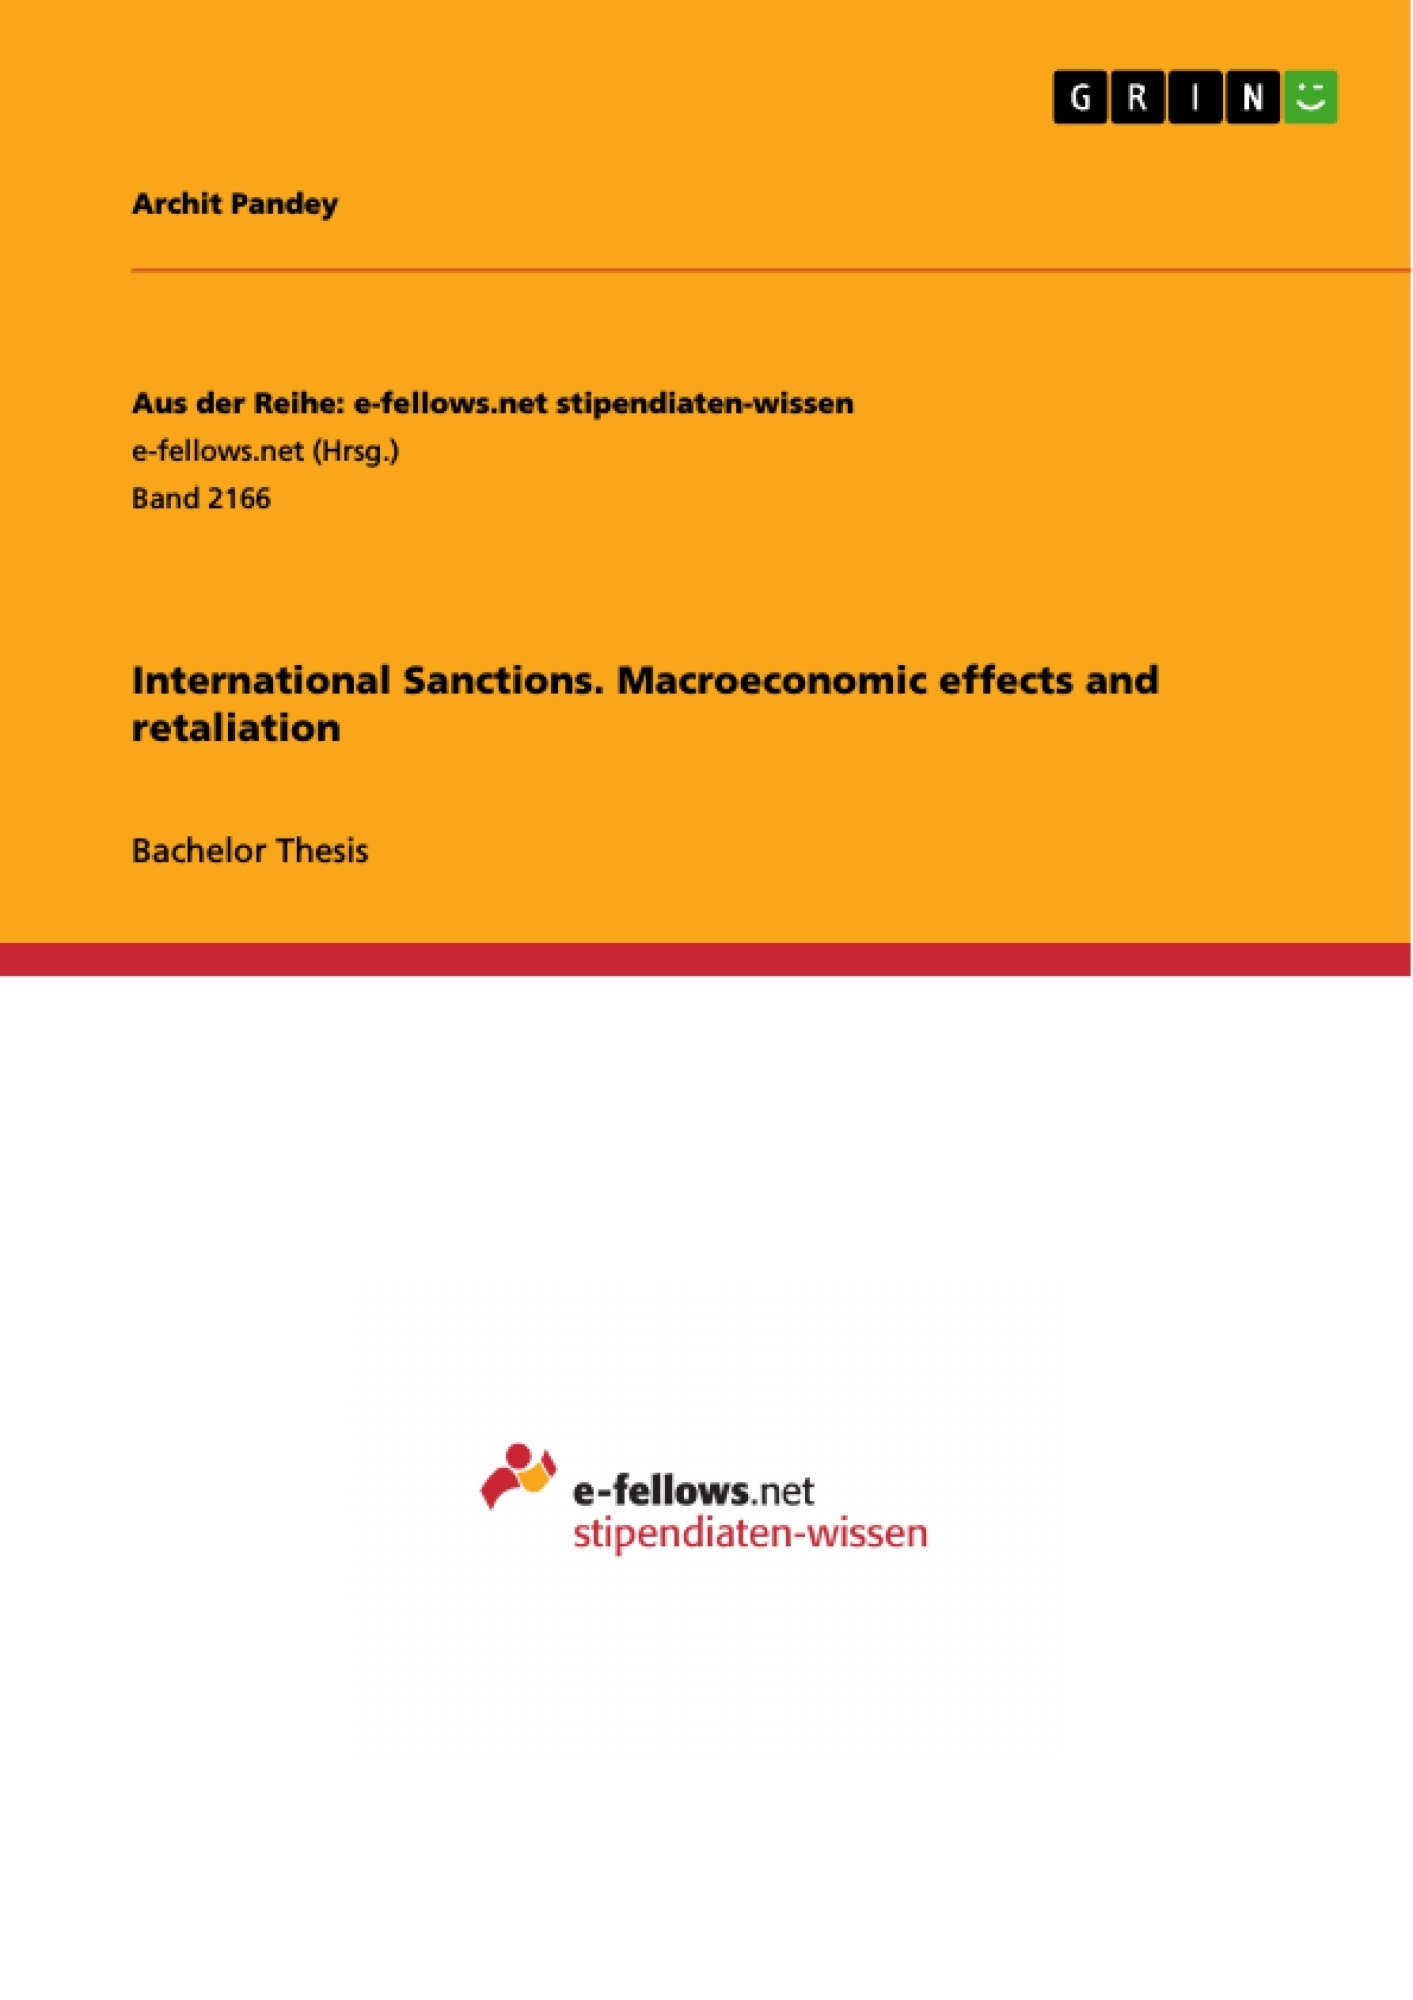 Title: International Sanctions. Macroeconomic effects and retaliation